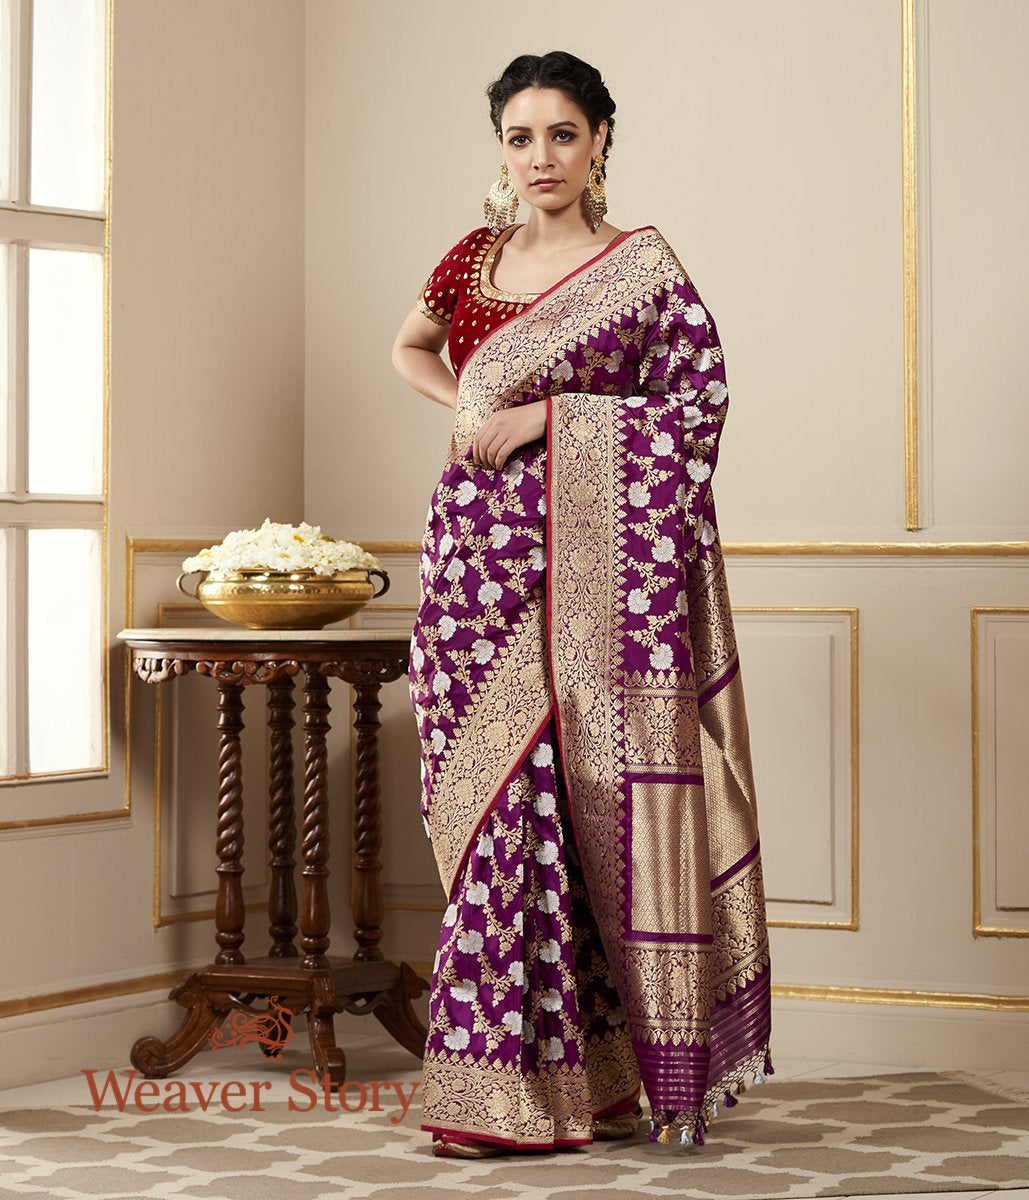 Handwoven Purple Sona Rupa Kadhwa Saree with a Floral Jaal